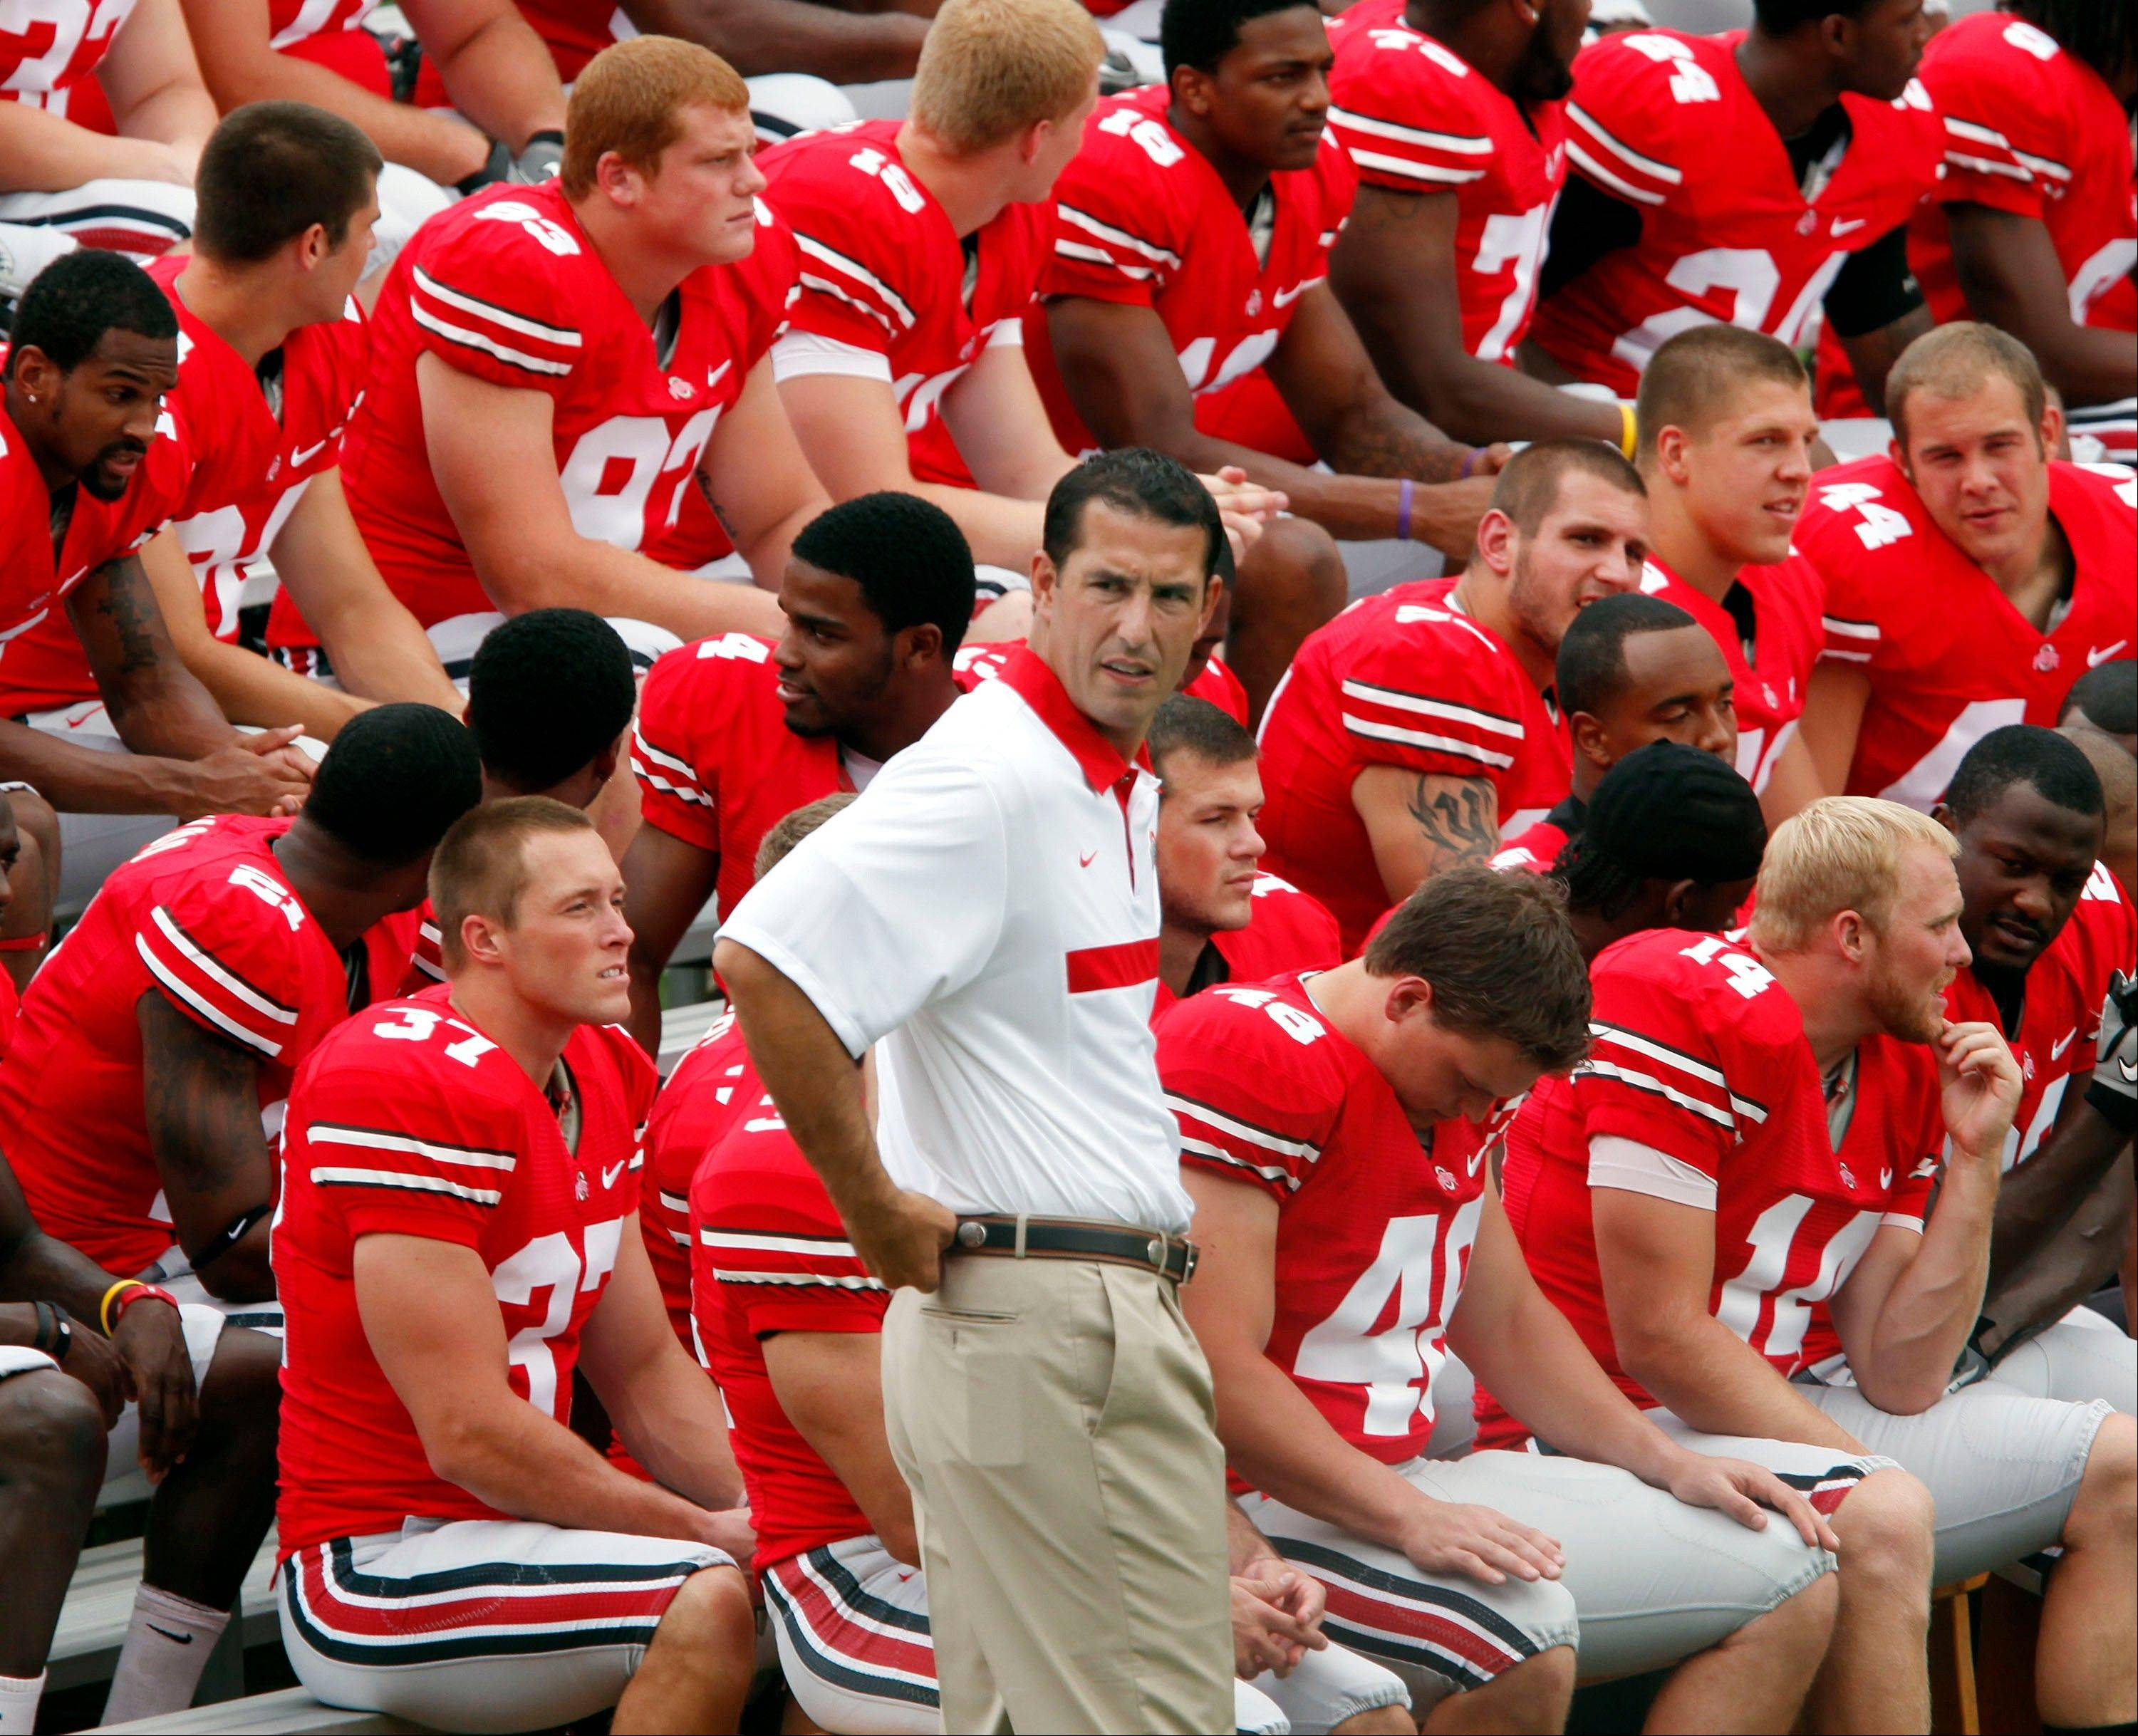 Ohio State head coach Luke Fickell says he's going to stick to his strengths and not dabble with the Buckeyes on offense.